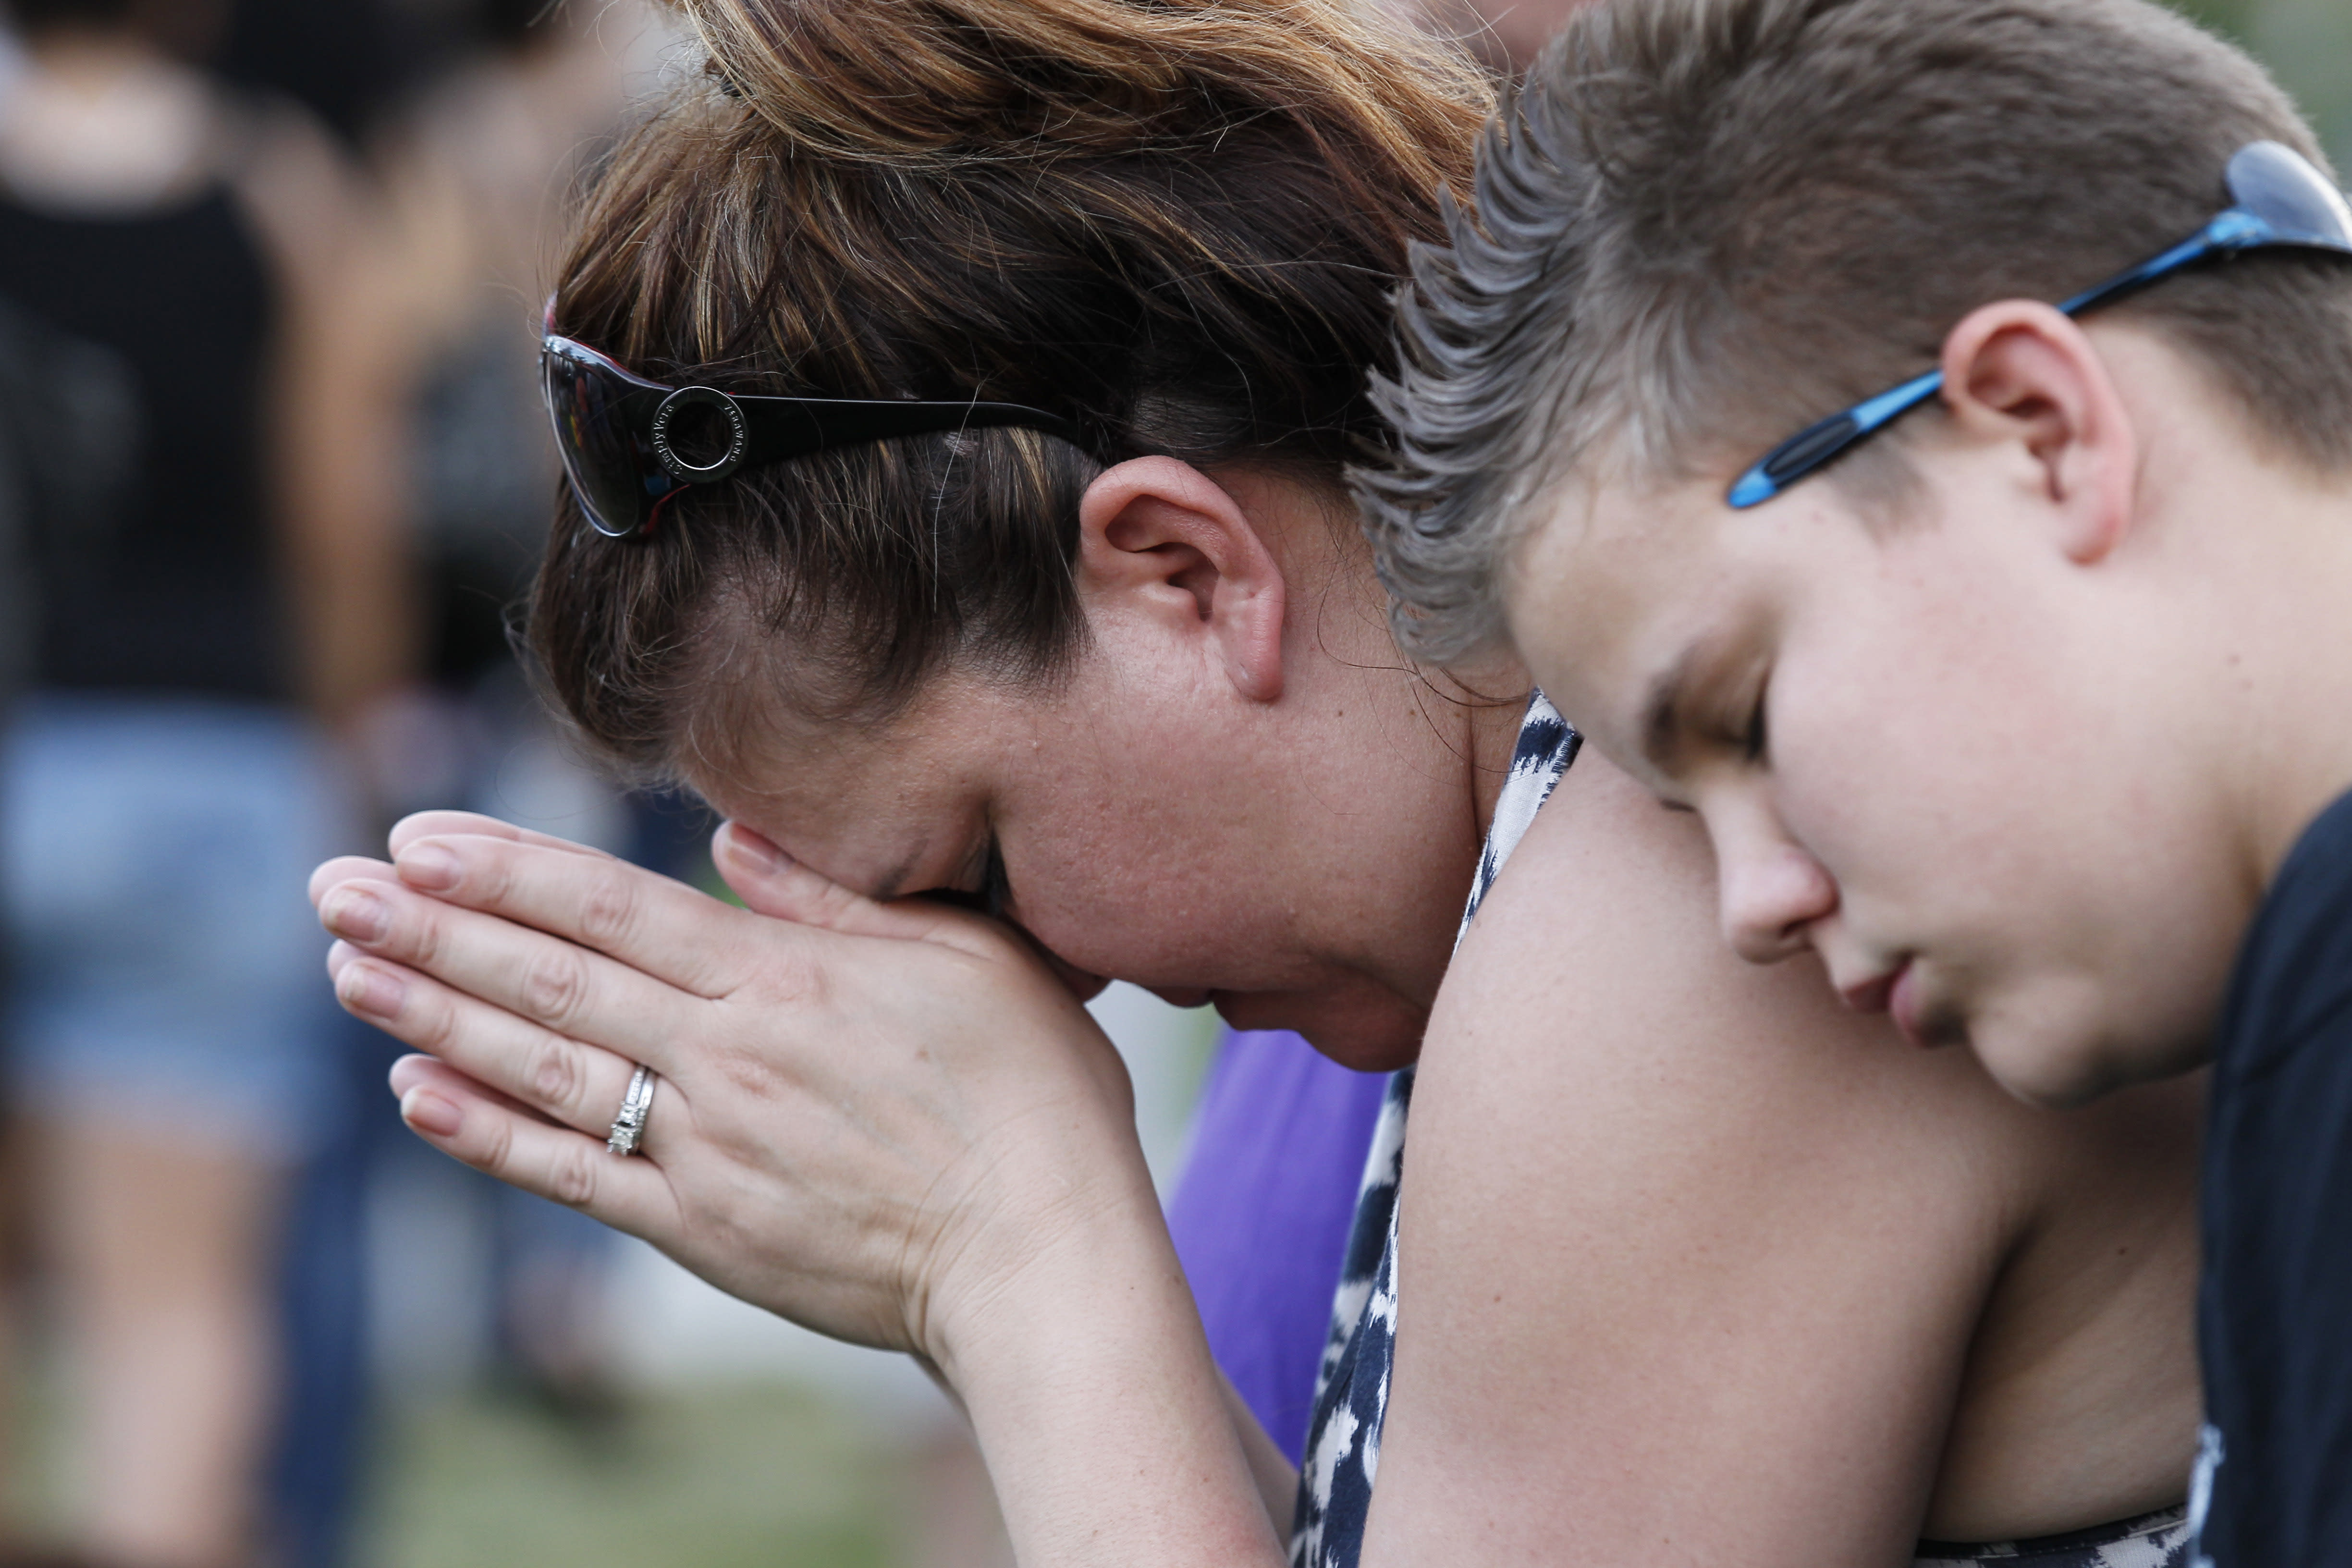 """Dylan Bowen, 13, right, holds onto his mother Lorri Hastings, as they pray, Sunday, July 22, 2012 in Aurora, Colo., during a prayer vigil for the victims of Friday's mass shooting at a movie theater. Twelve people were killed and dozens were injured in a shooting attack early Friday at the packed theater during a showing of the Batman movie, """"The Dark Knight Rises."""" Police have identified the suspected shooter as James Holmes, 24. (AP Photo/Alex Brandon)"""